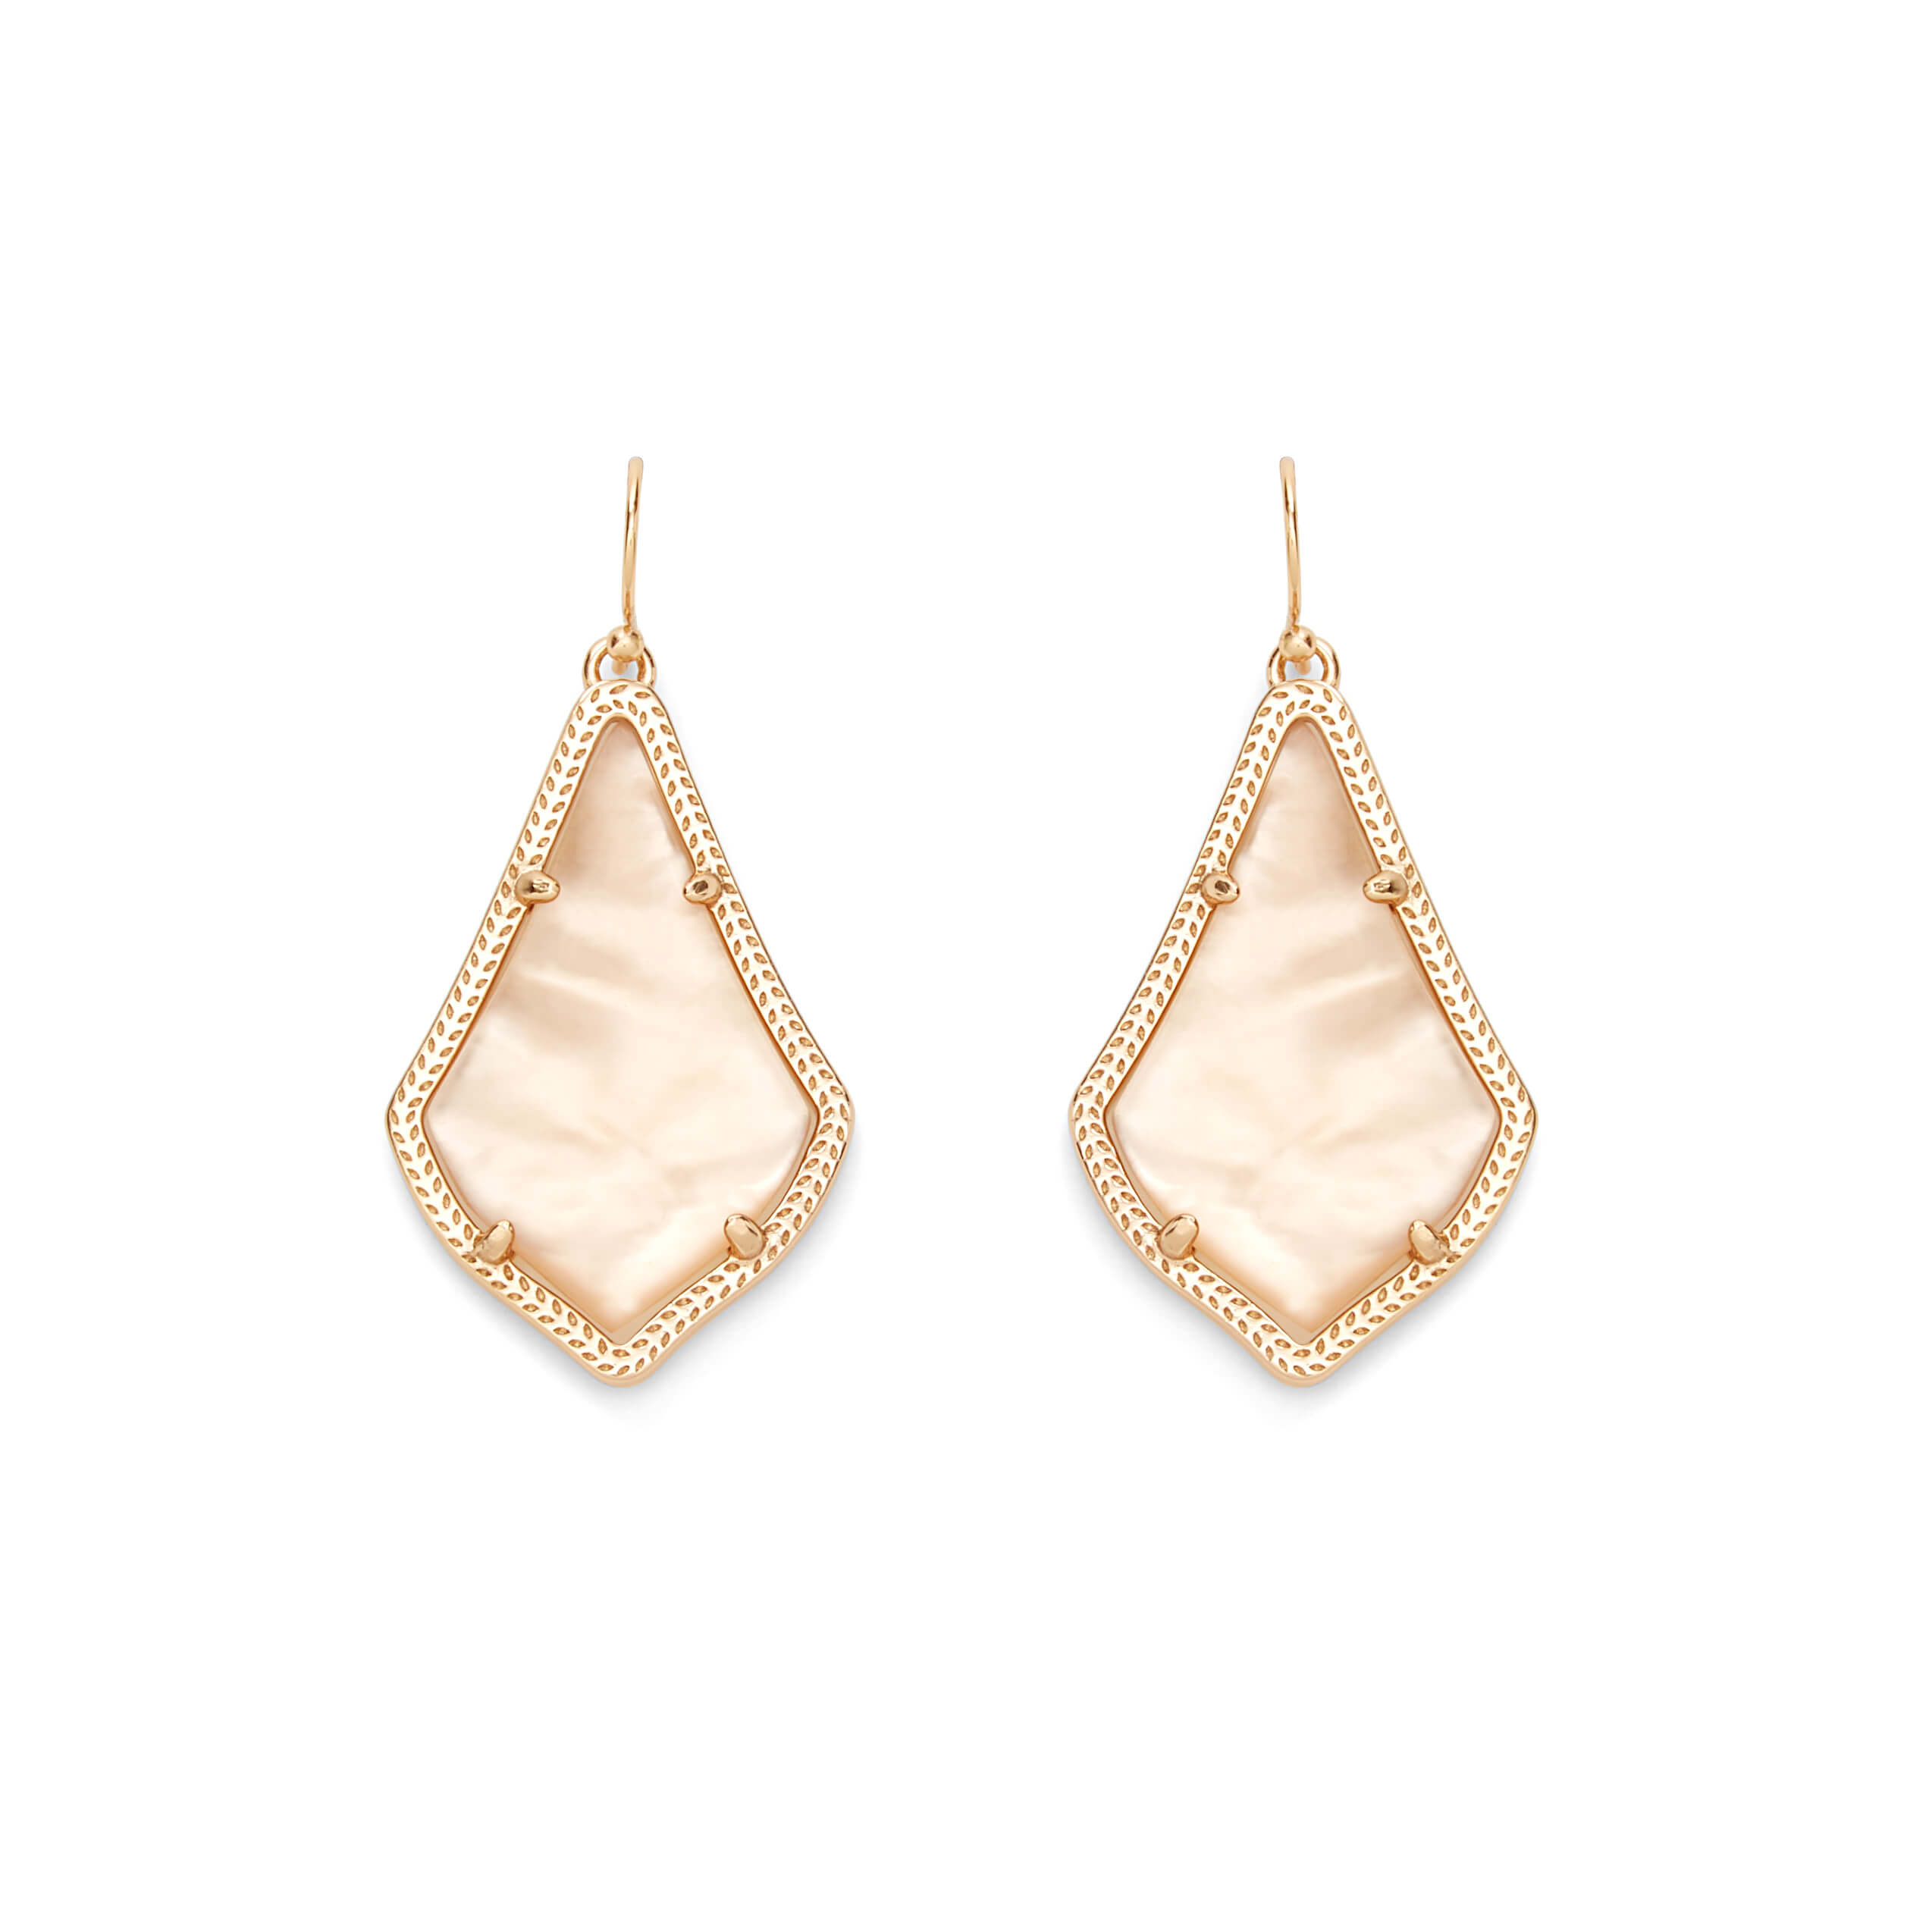 Alex Earrings in Peach Illusion